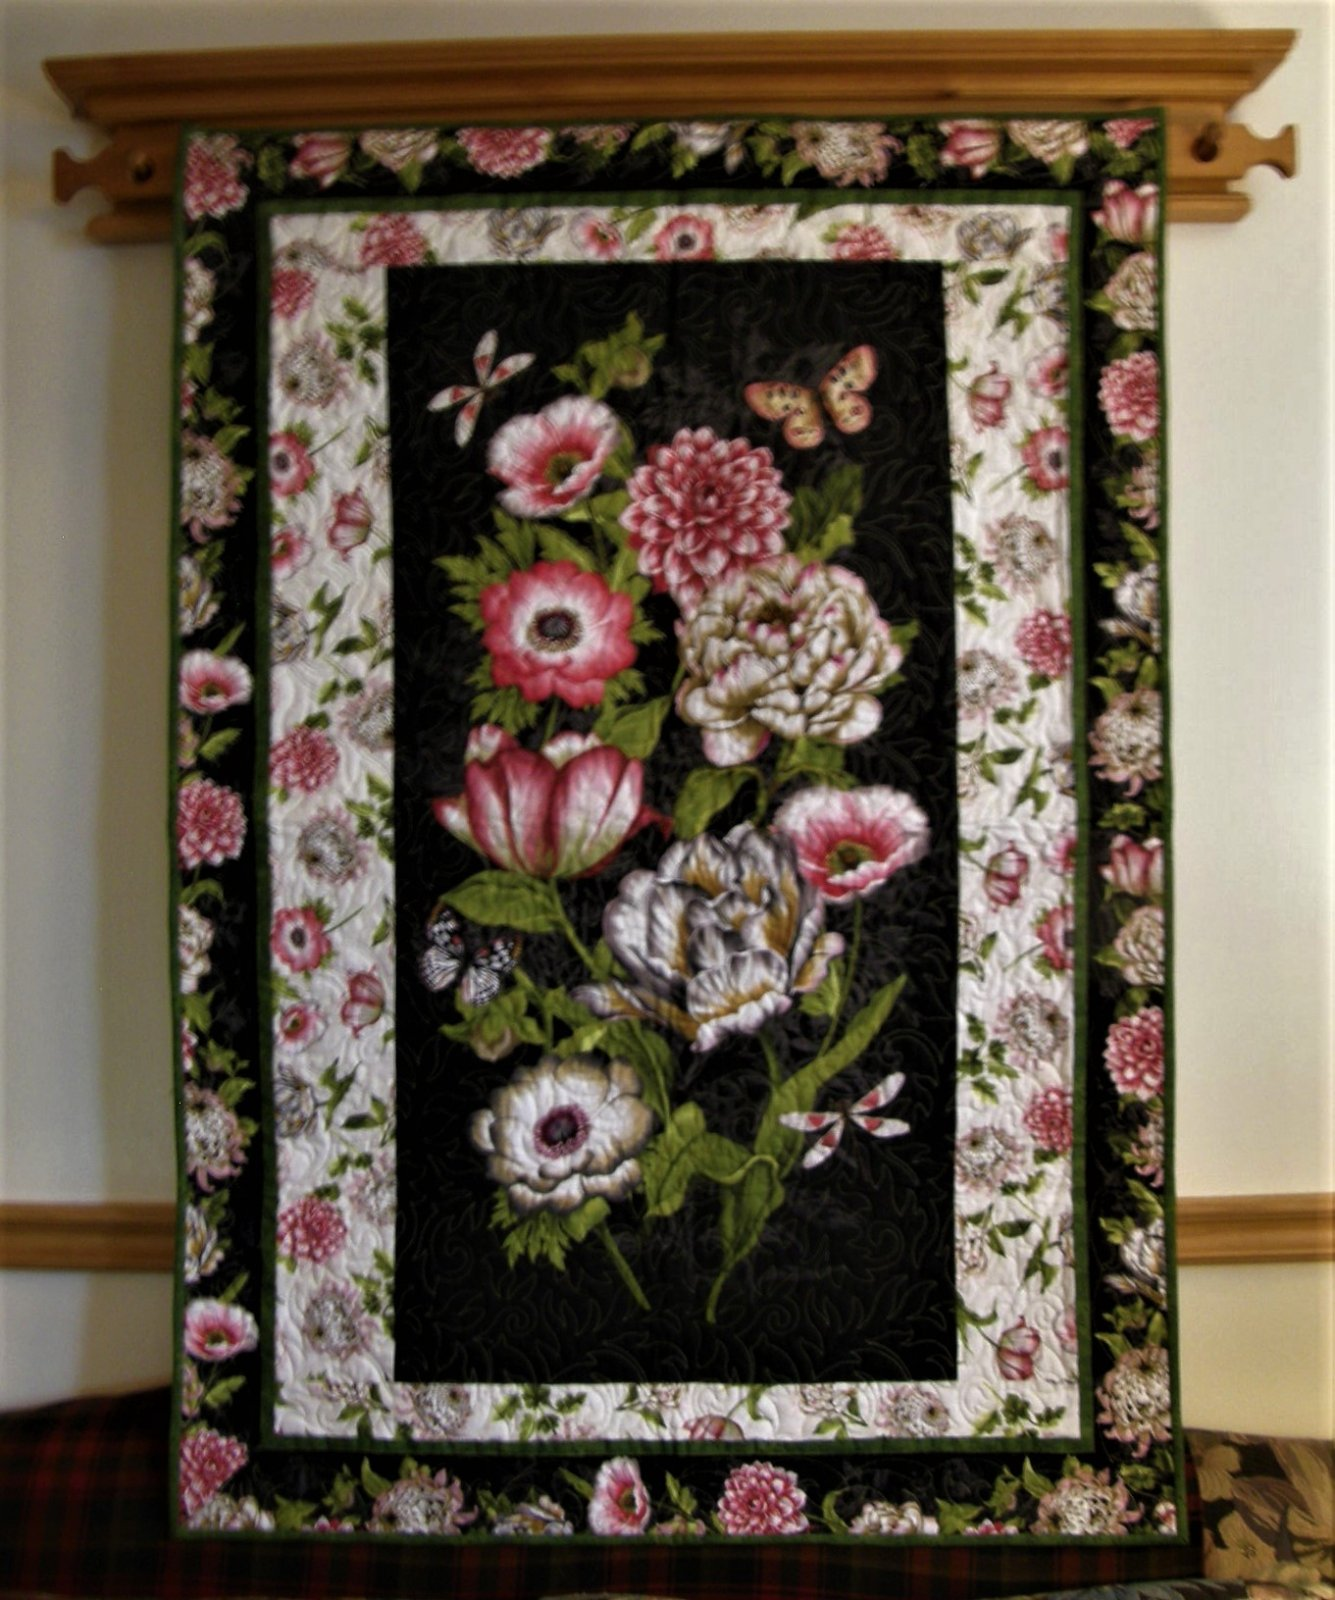 Tivoli Garden Finished Wall hanging